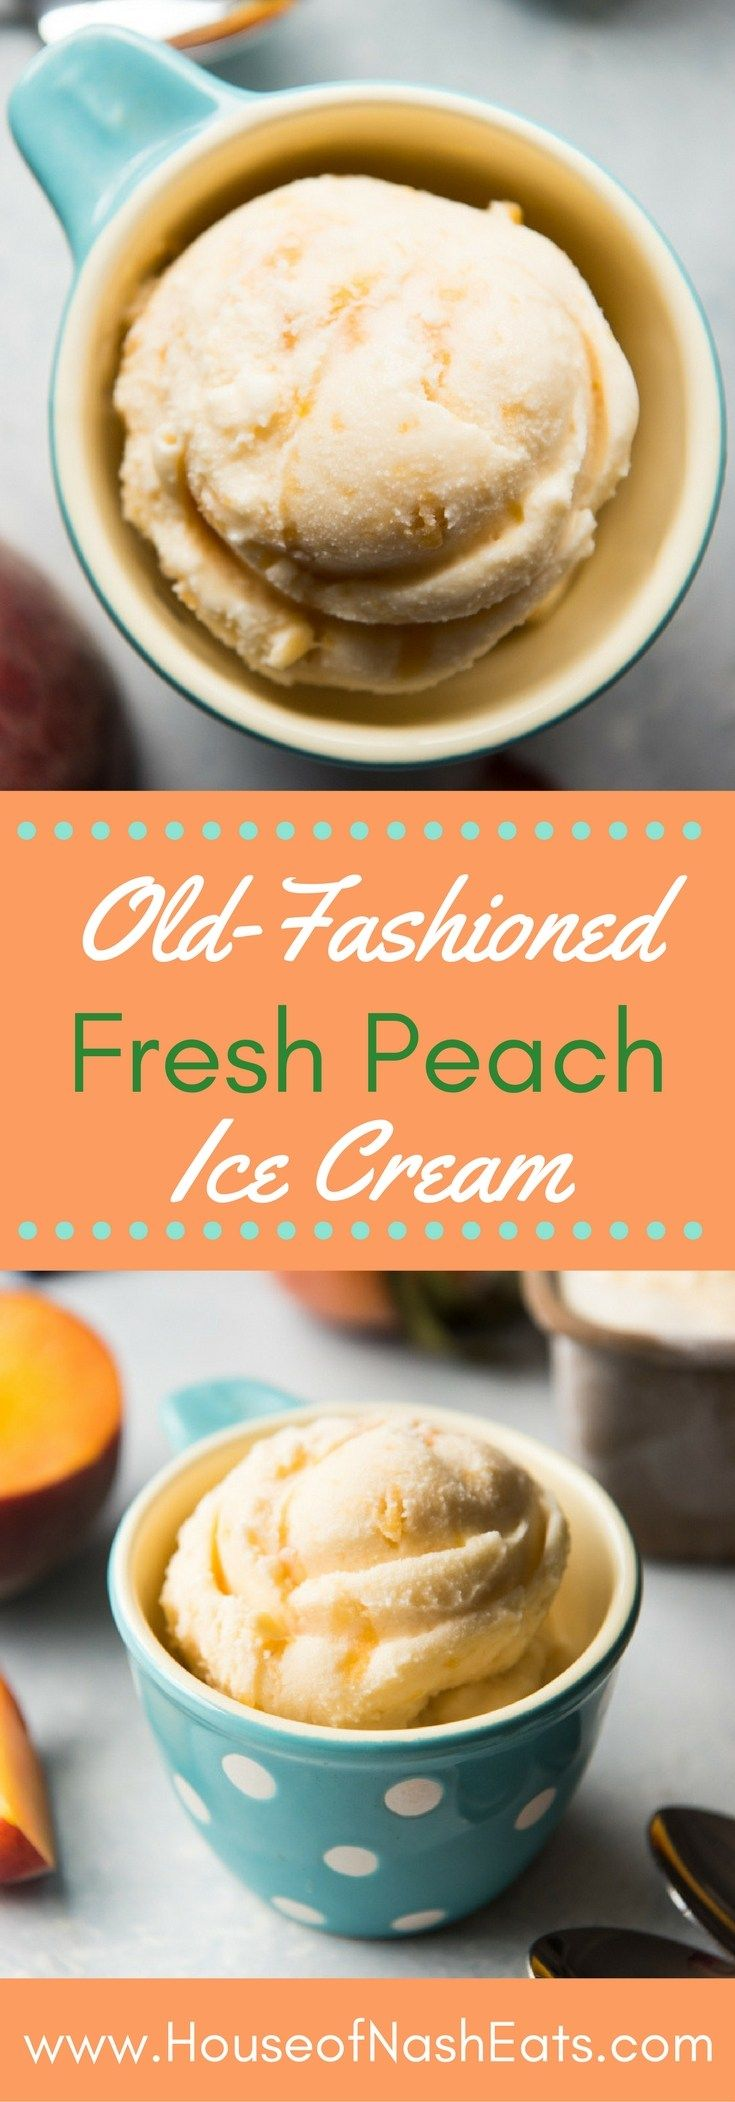 Nothing says summer like creamy, cold, delicious, Old